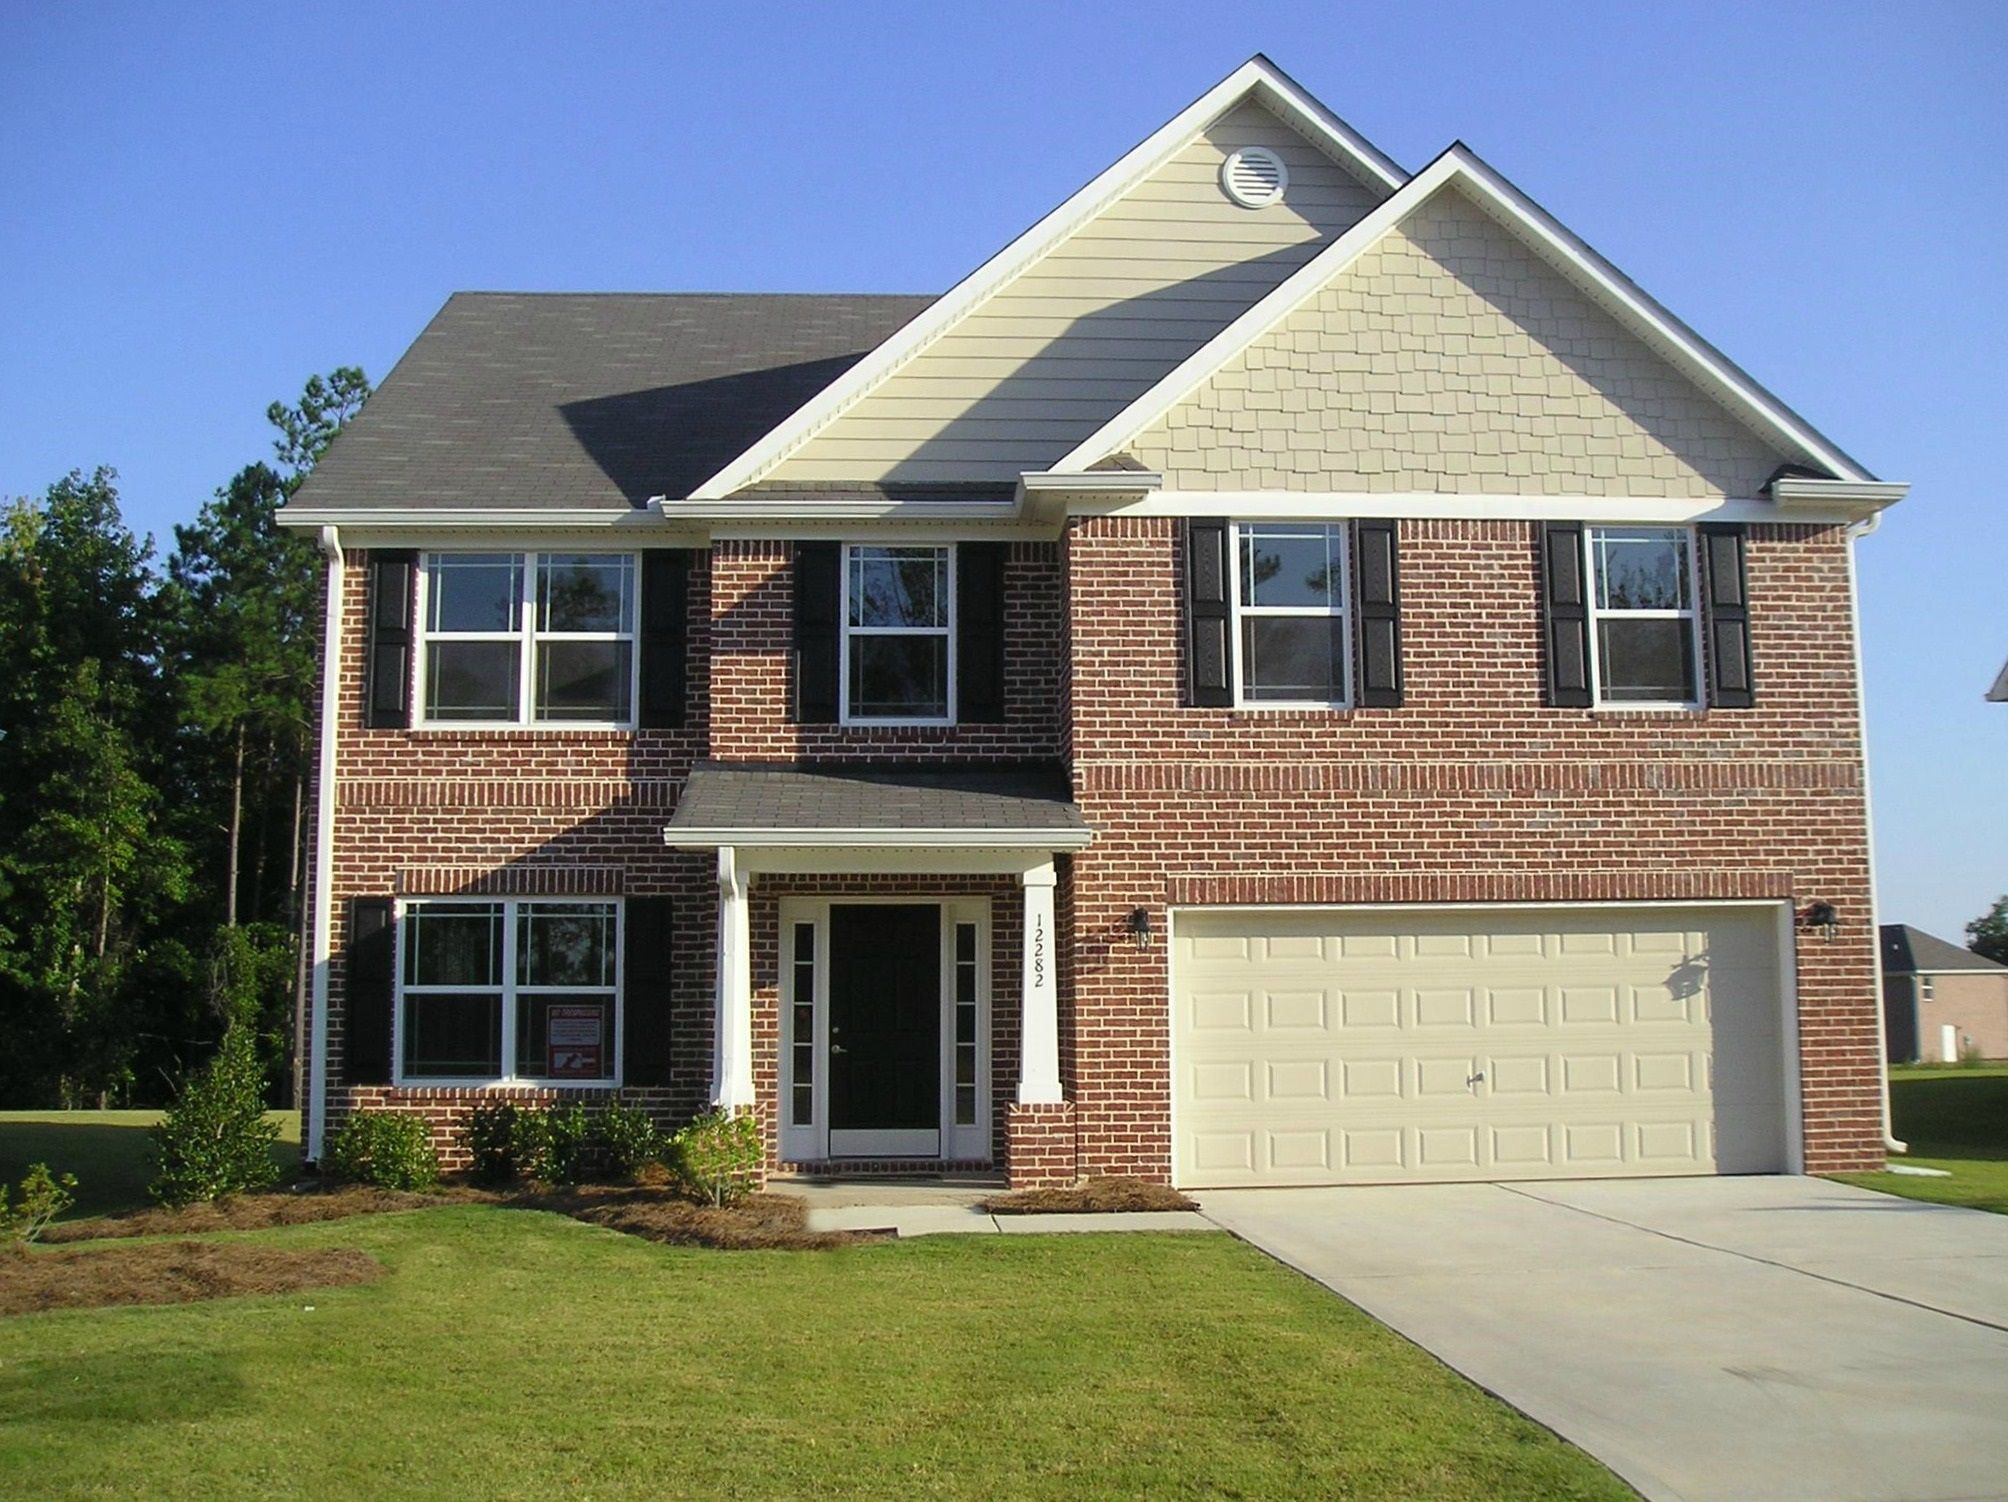 Affordable Homes for Sale in Atlanta, Georgia   Atlanta houses for sale,  Big houses for sale, Foreclosed homes for sale